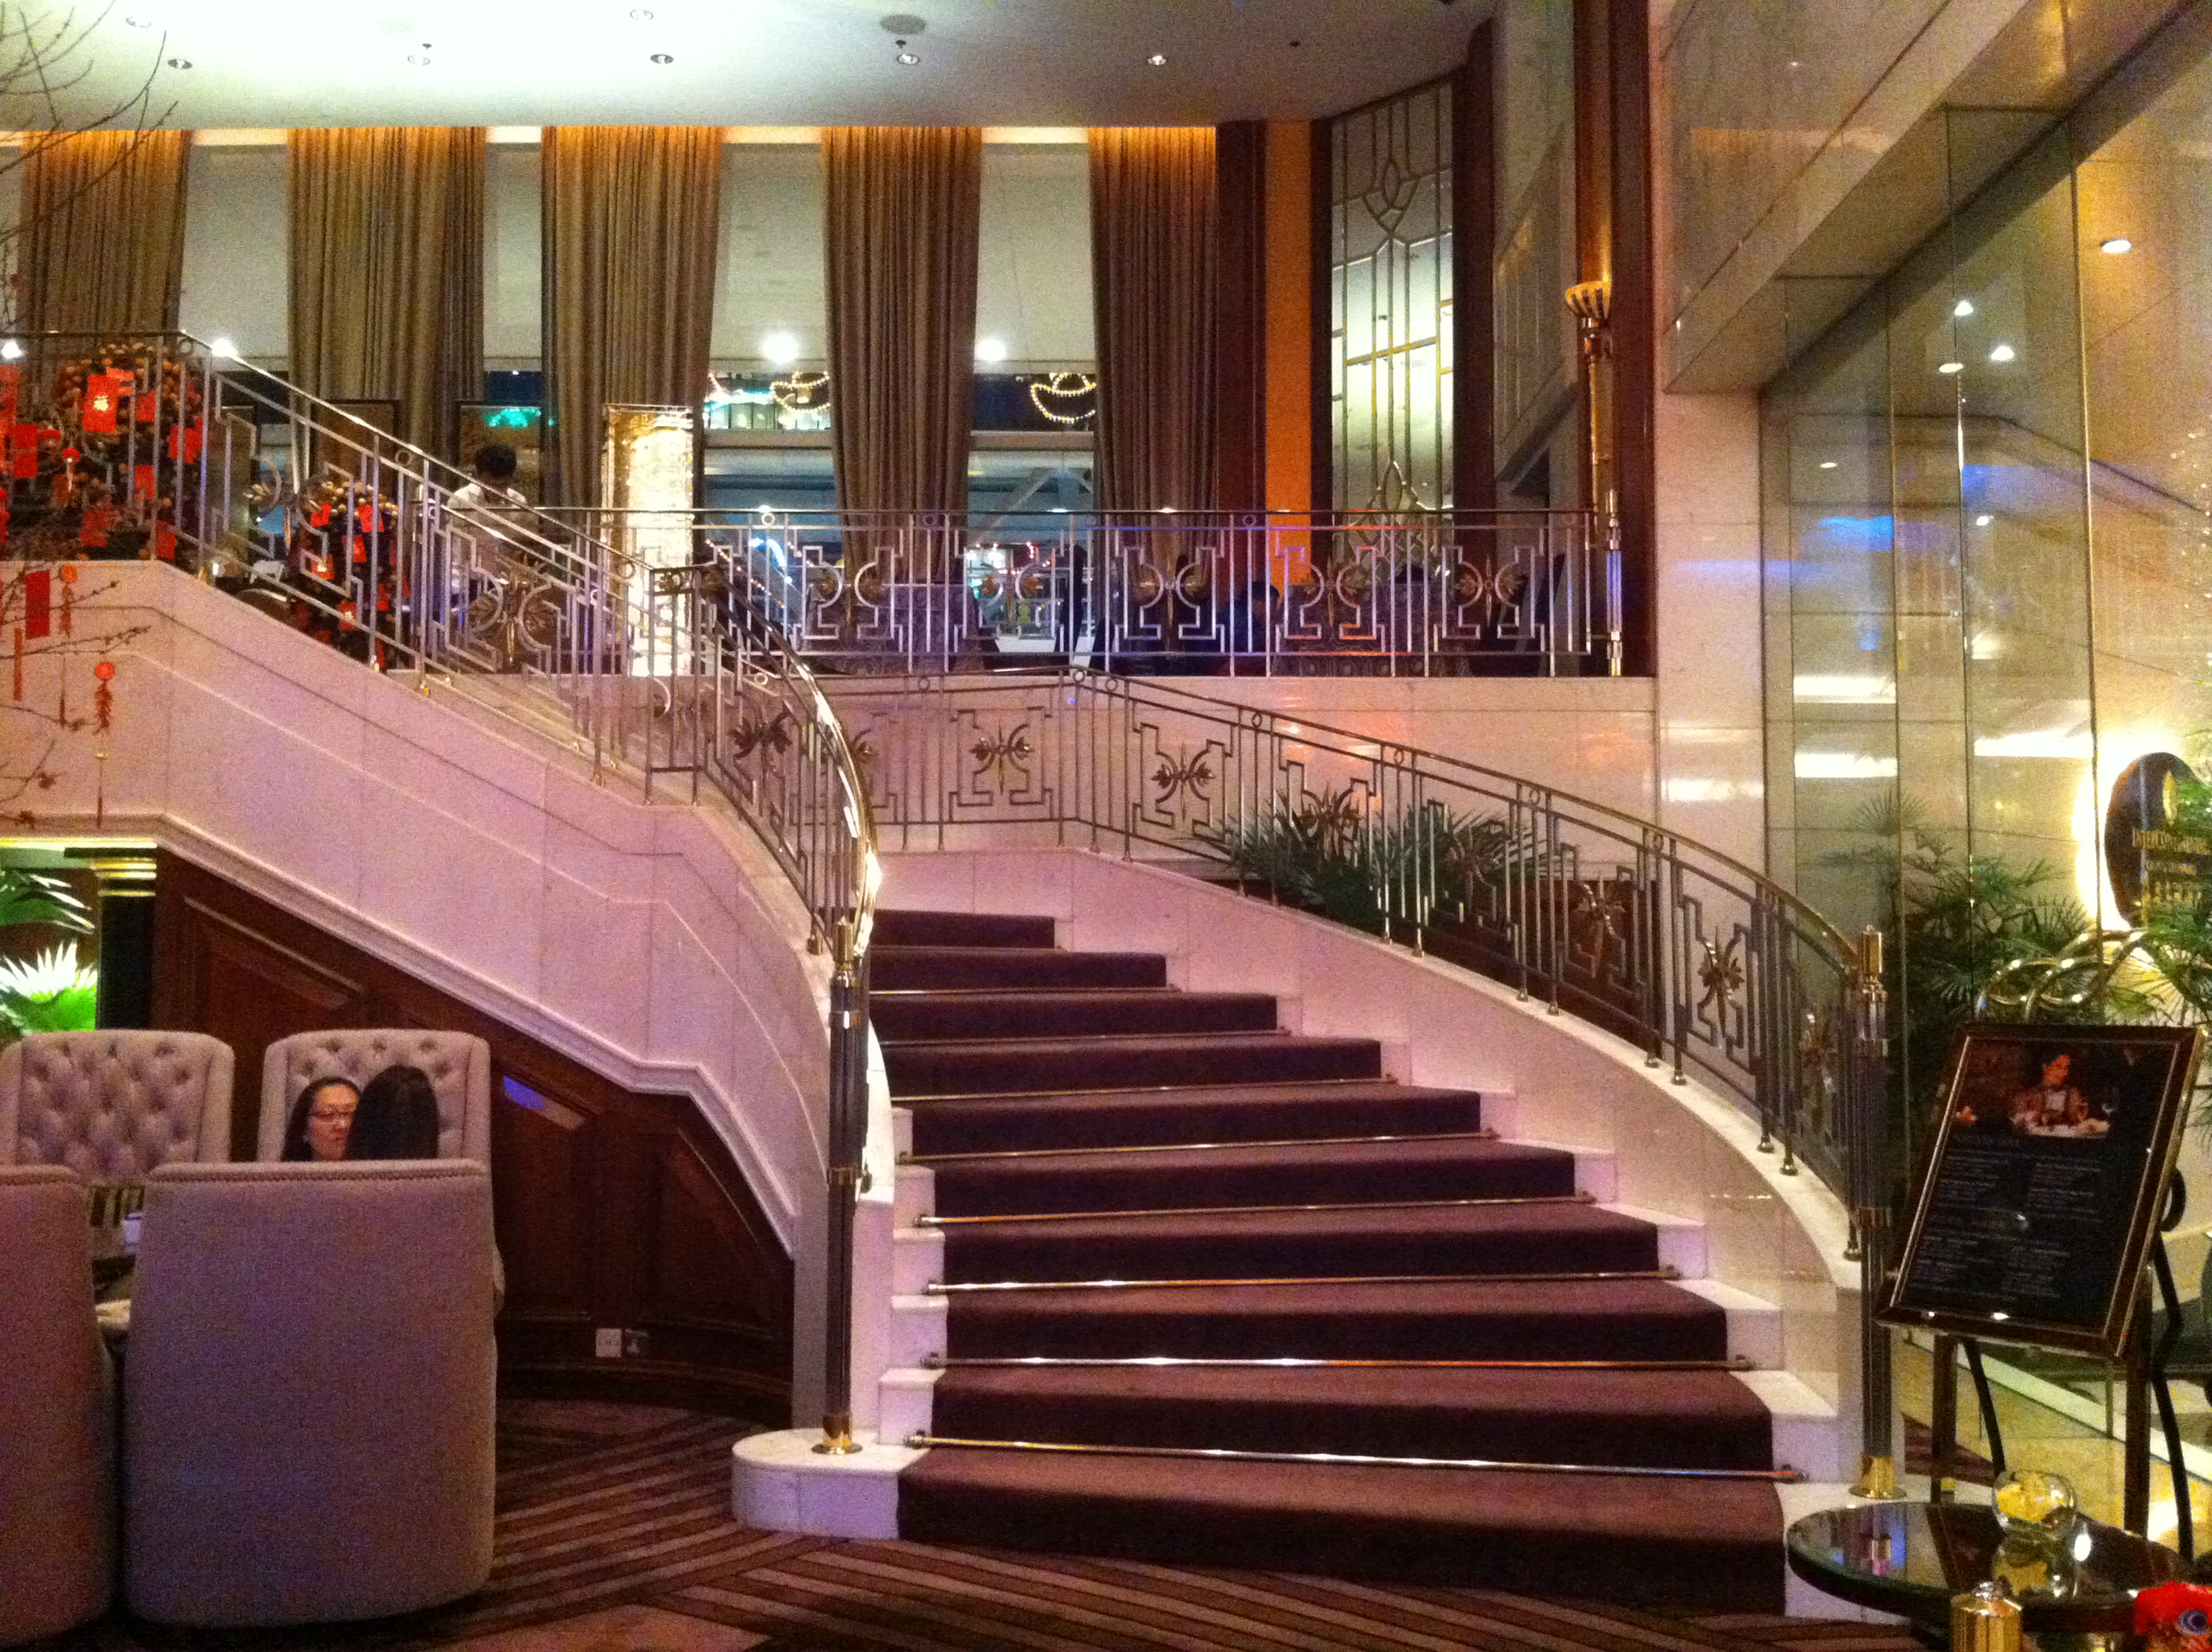 File:HK TST East  InterContinental Grand Stanford